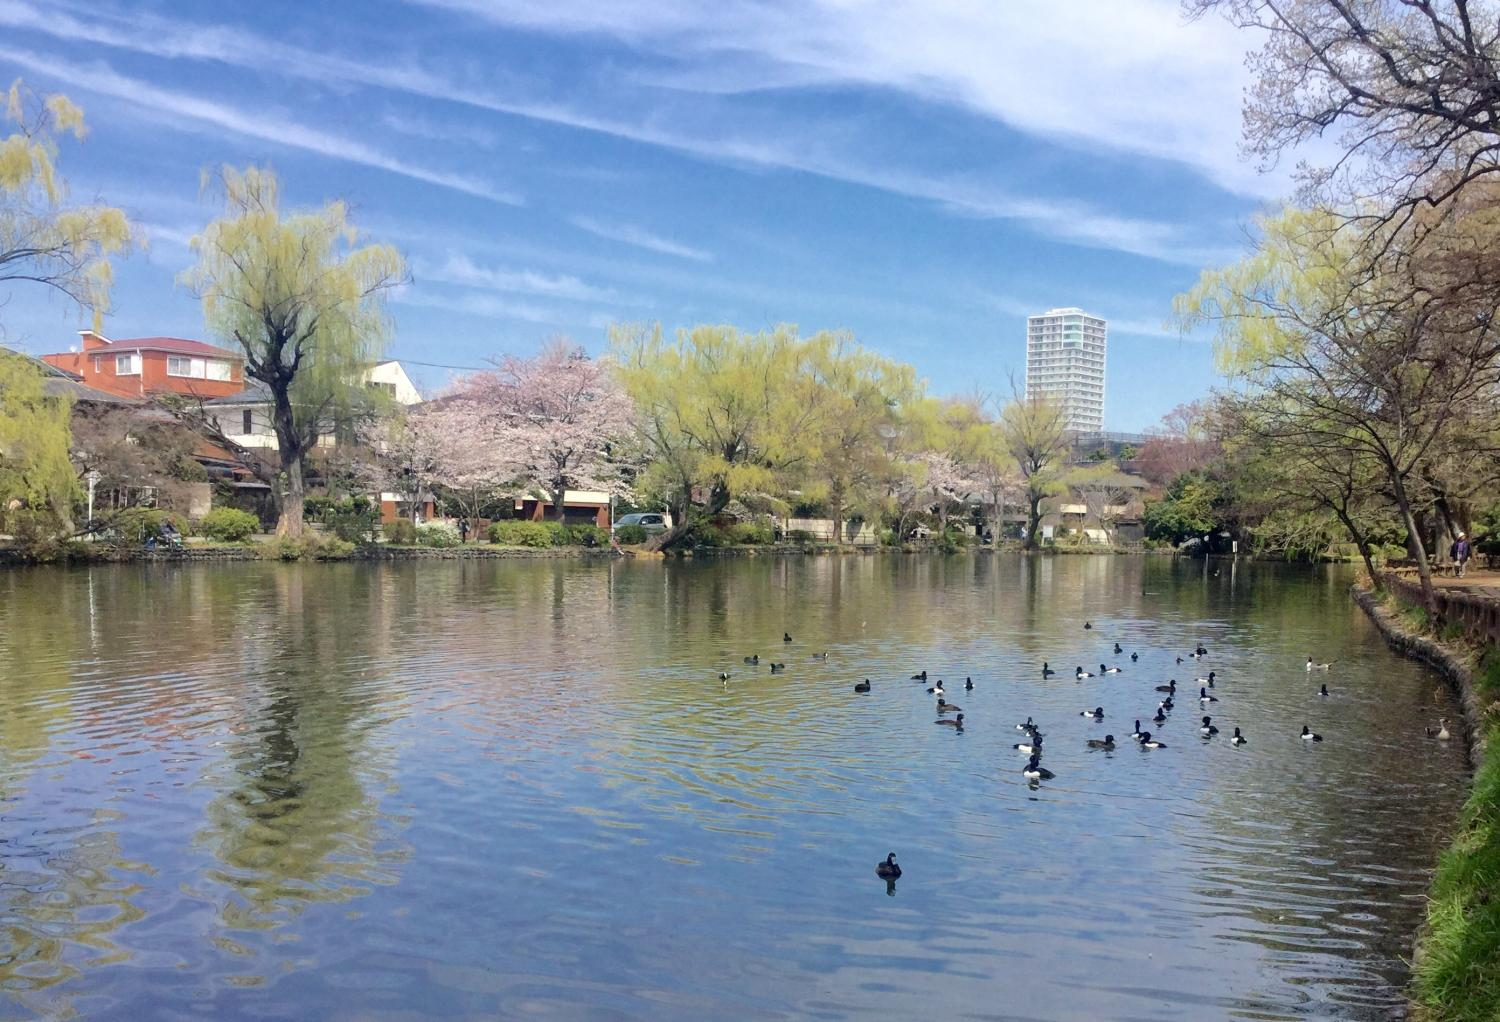 Spotbill ducks are cherry blossom viewing, too